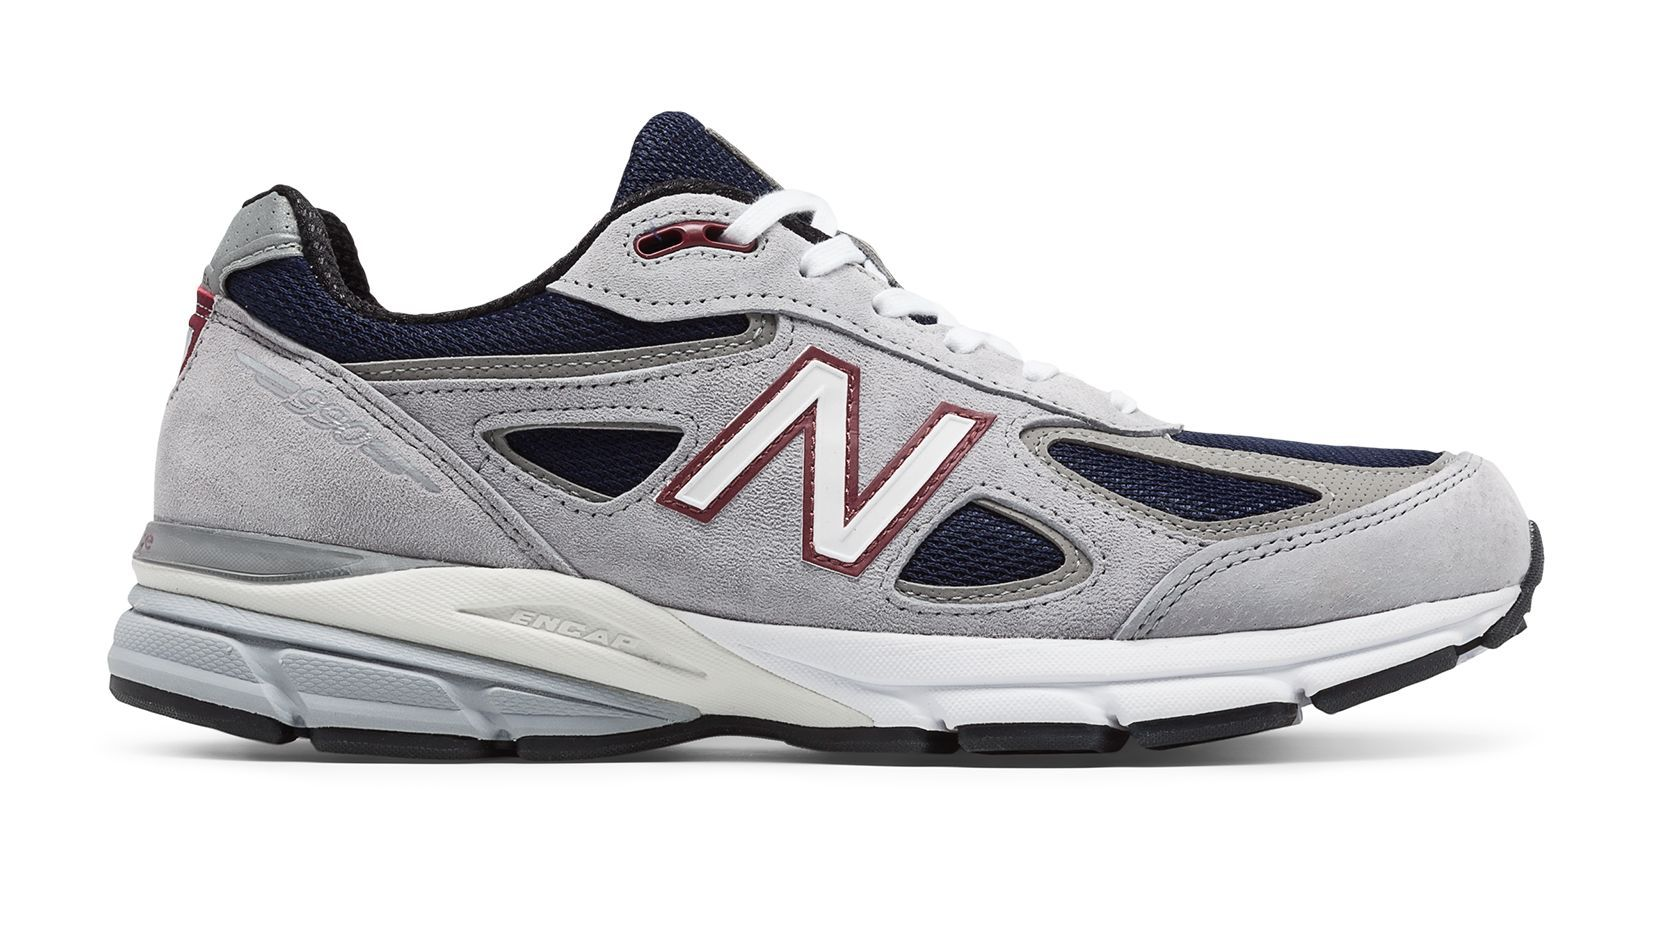 half off 95c15 cc9f1 New Balance 990v4, Grey with Navy | New Balance 990v4 | New ...